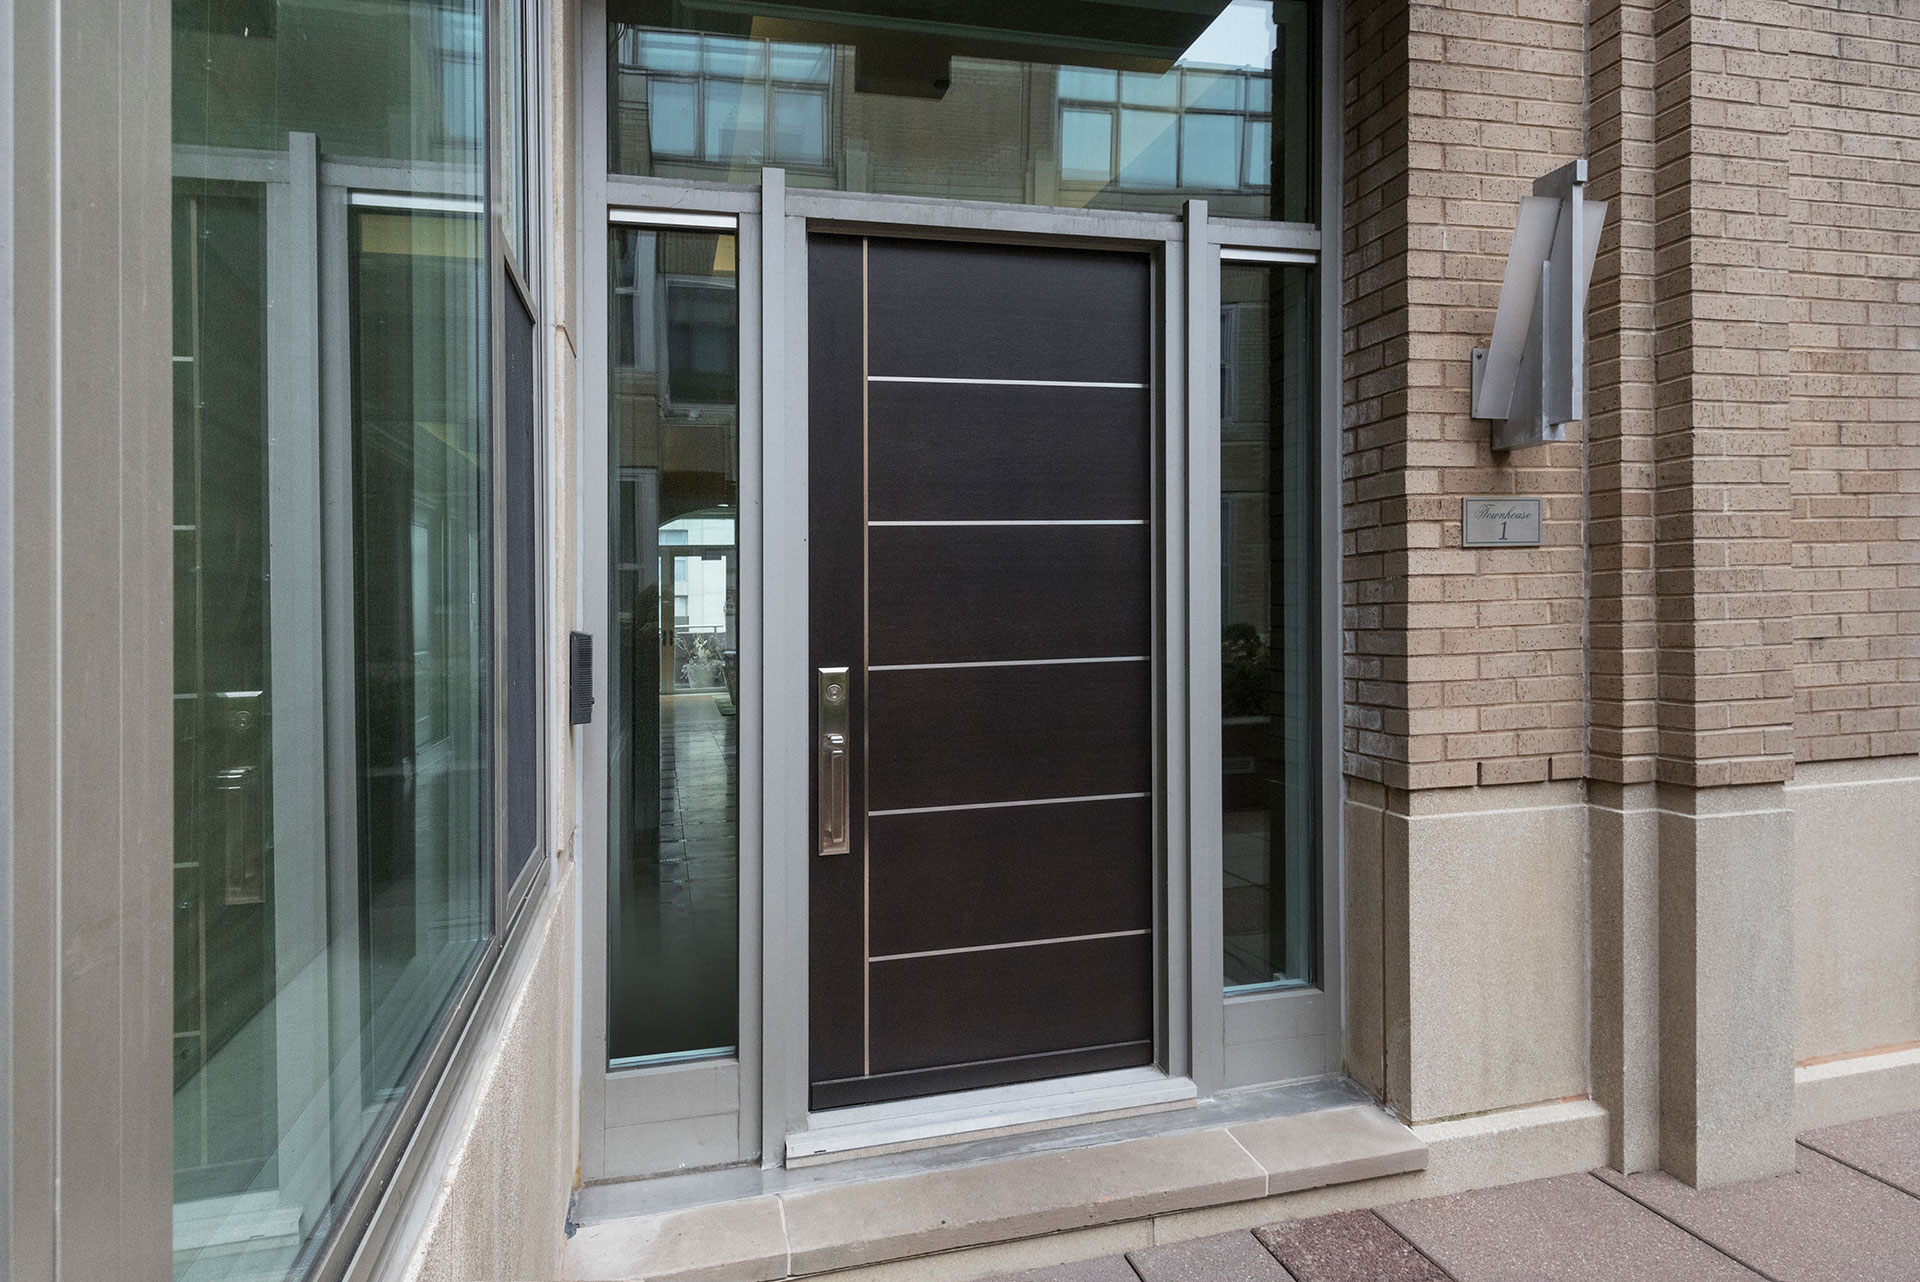 Modern Commercial Doors u2013 33 W Ontario Street Chicago Townhomes - Featured Project by Glenview Haus & Modern Commercial Doors - 33 W Ontario Street Chicago Townhomes ... pezcame.com